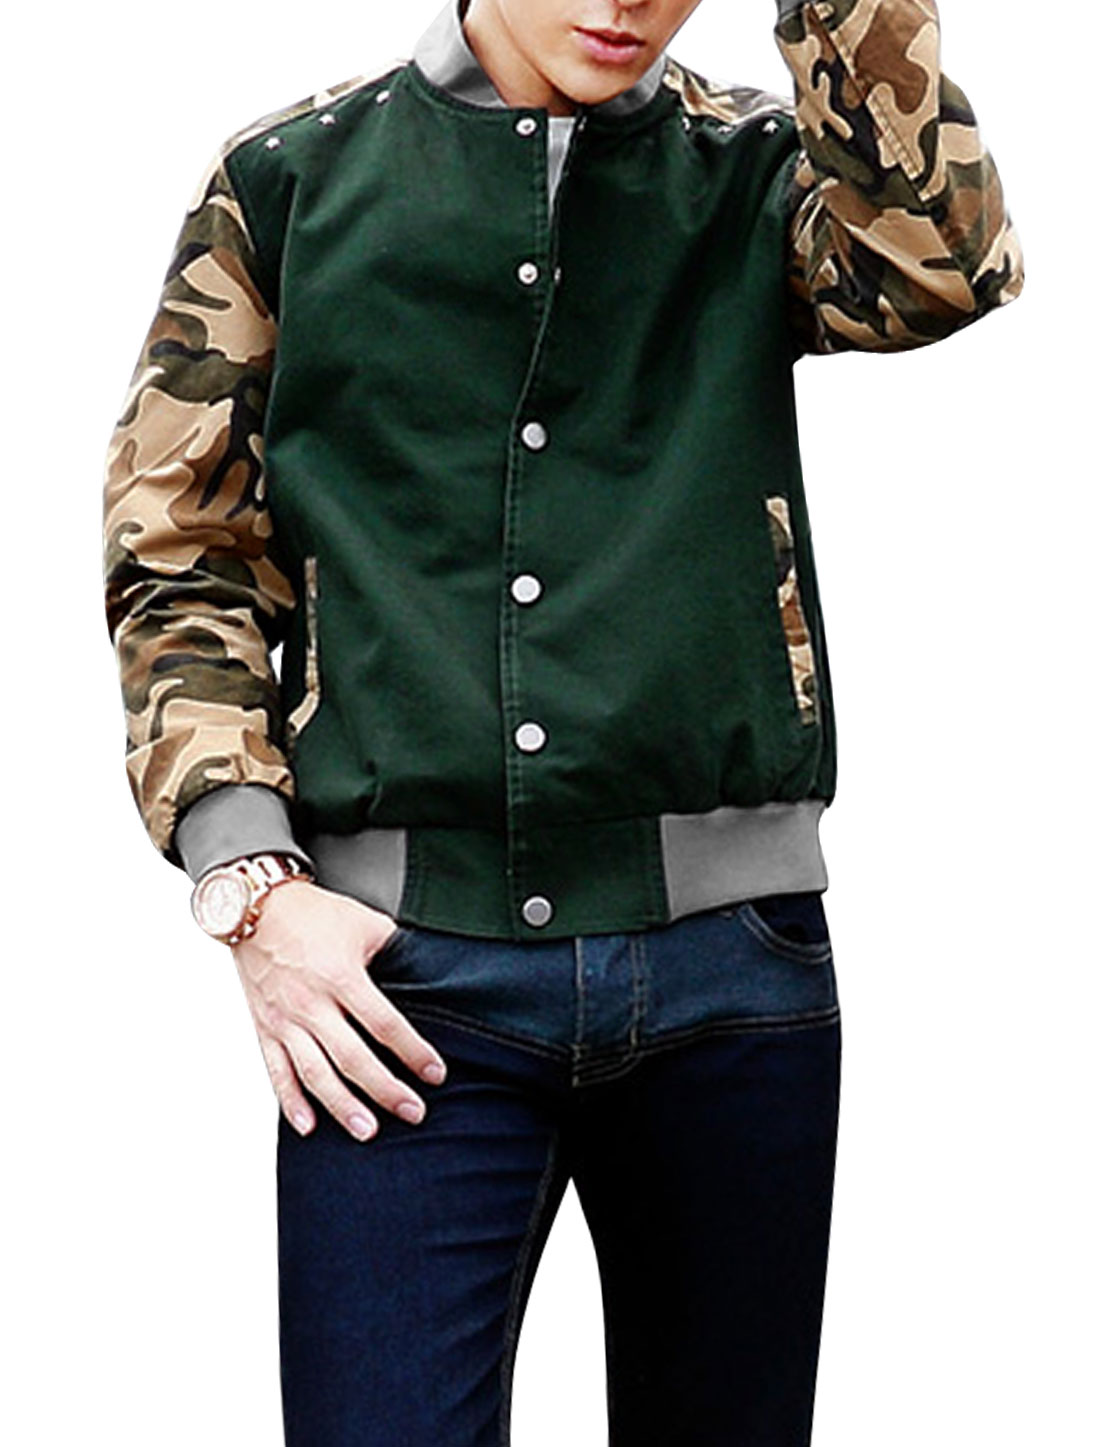 New Style Fashion Camouflage Detail Light Jacket for Men Dusty Green M